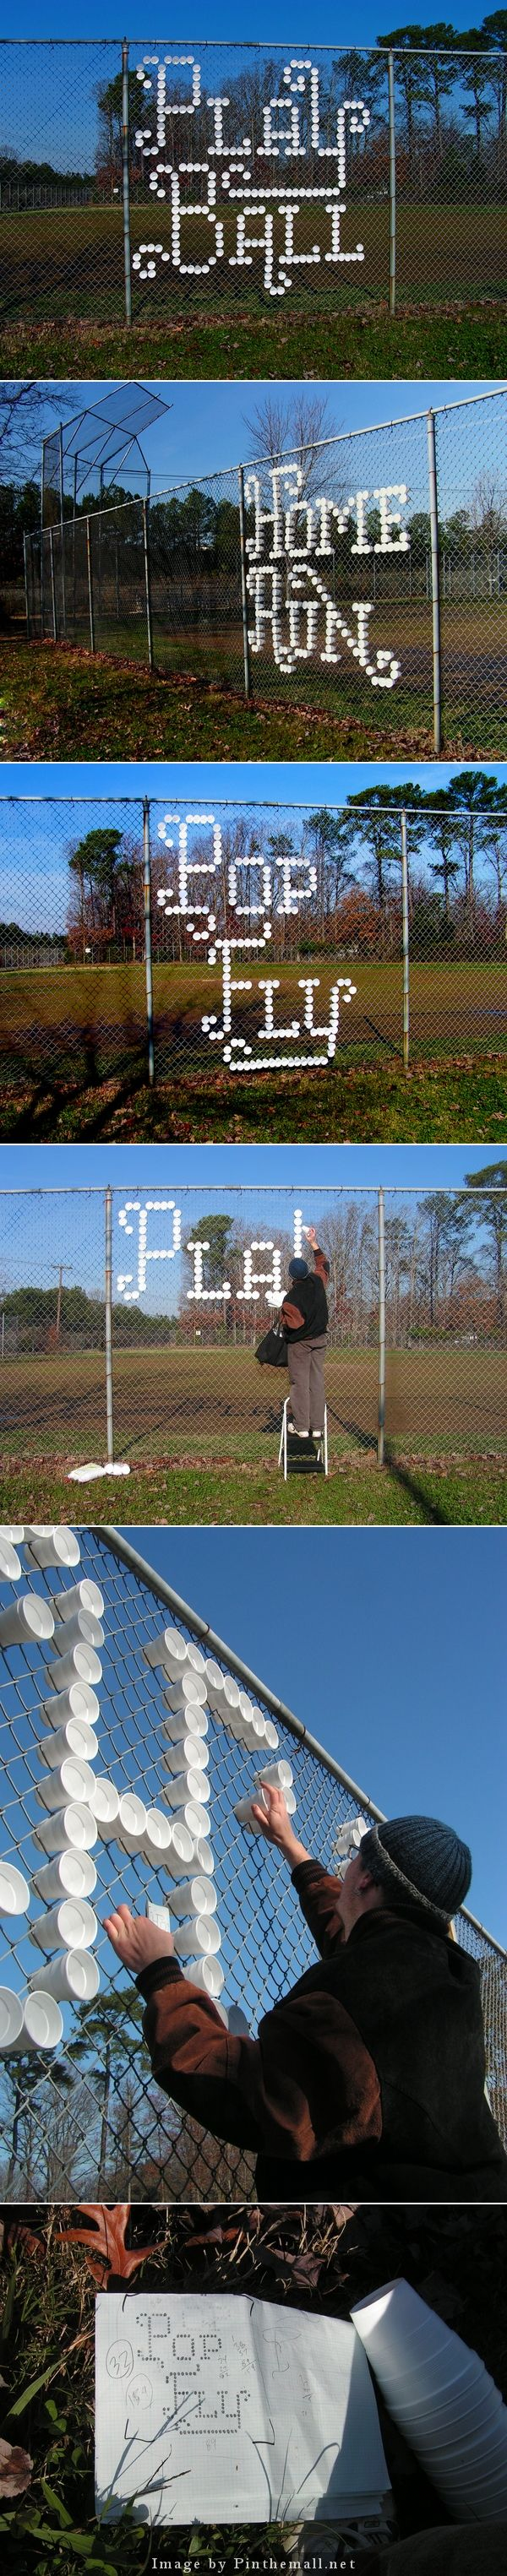 Styrofoam cup typography - I can greet the parents/students with a message in the fence at the main entrance!